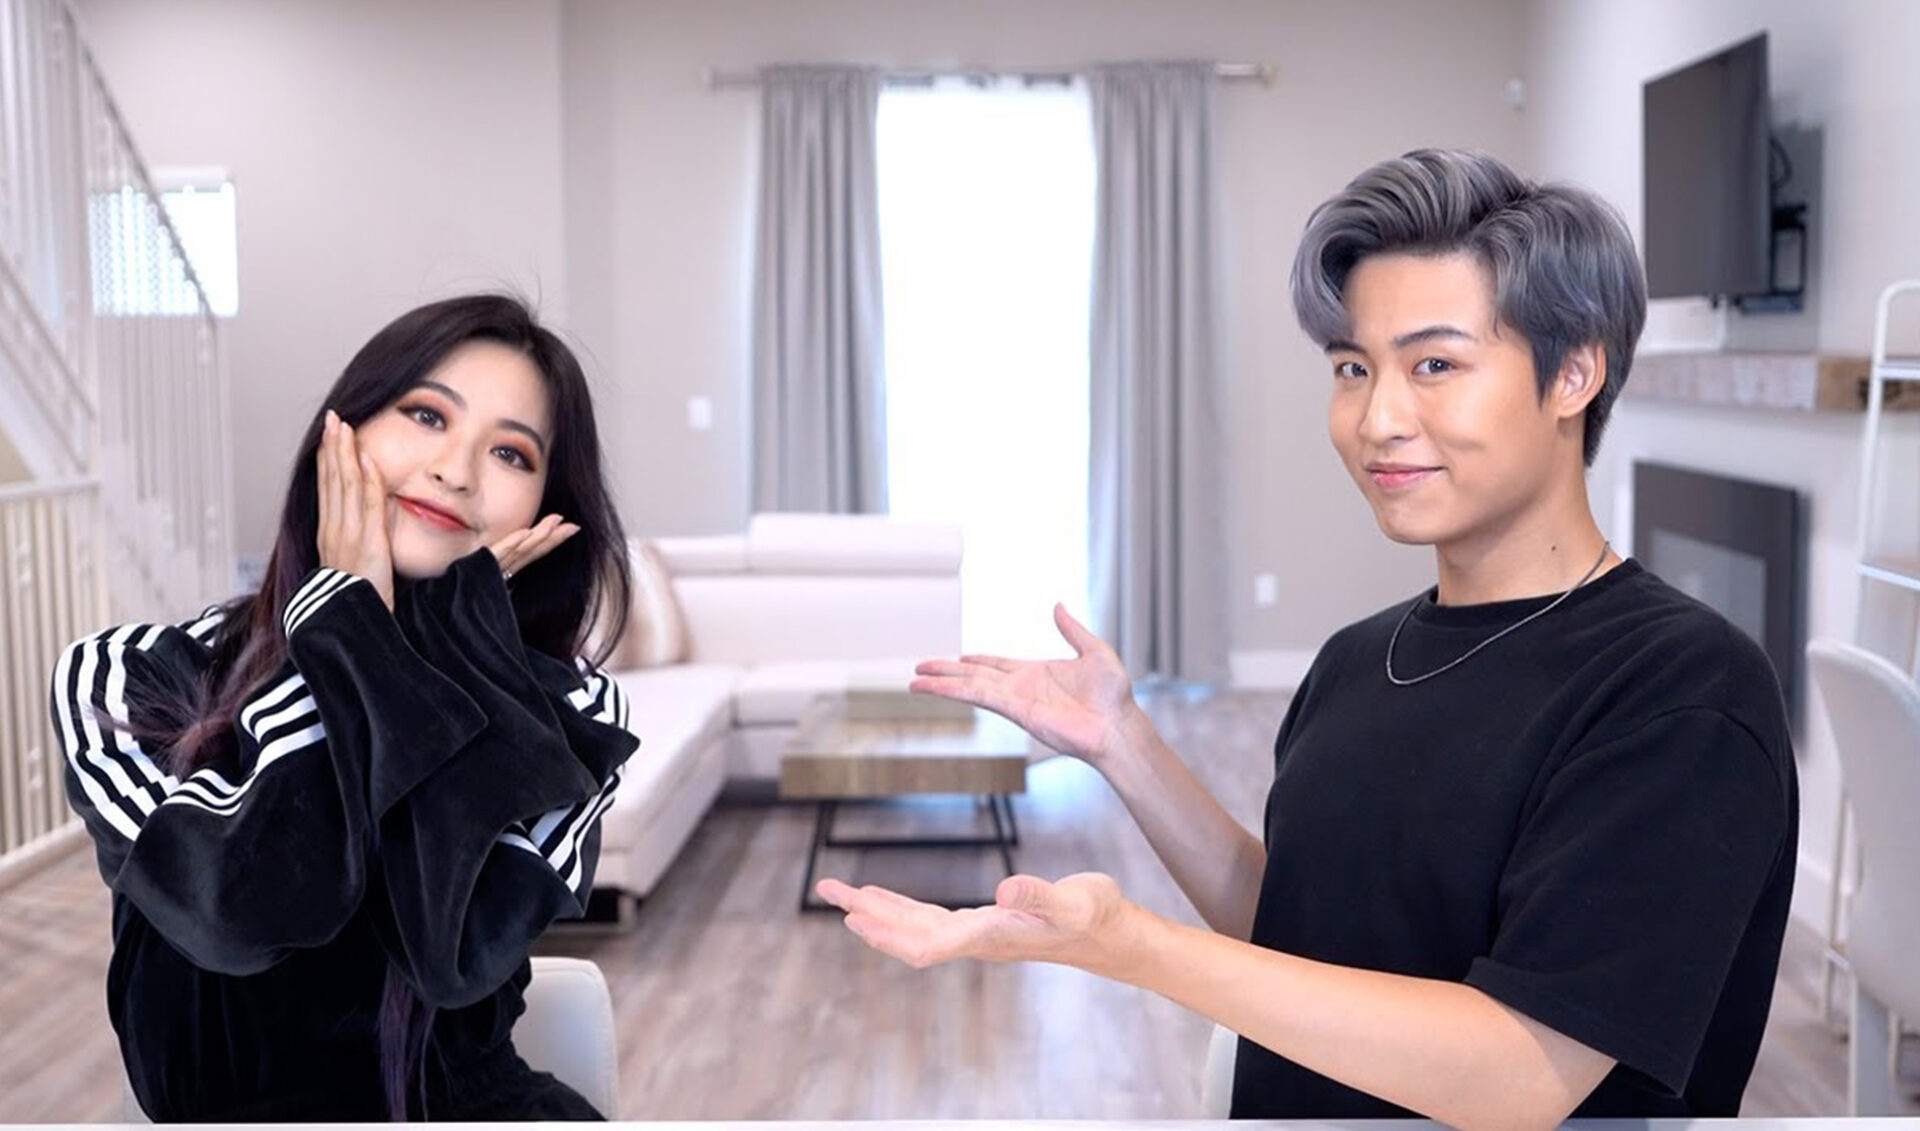 Creators On The Rise: Ellen & Brian's K-Pop Dance Covers Are Turning Their Channel Into A Chart-Topper